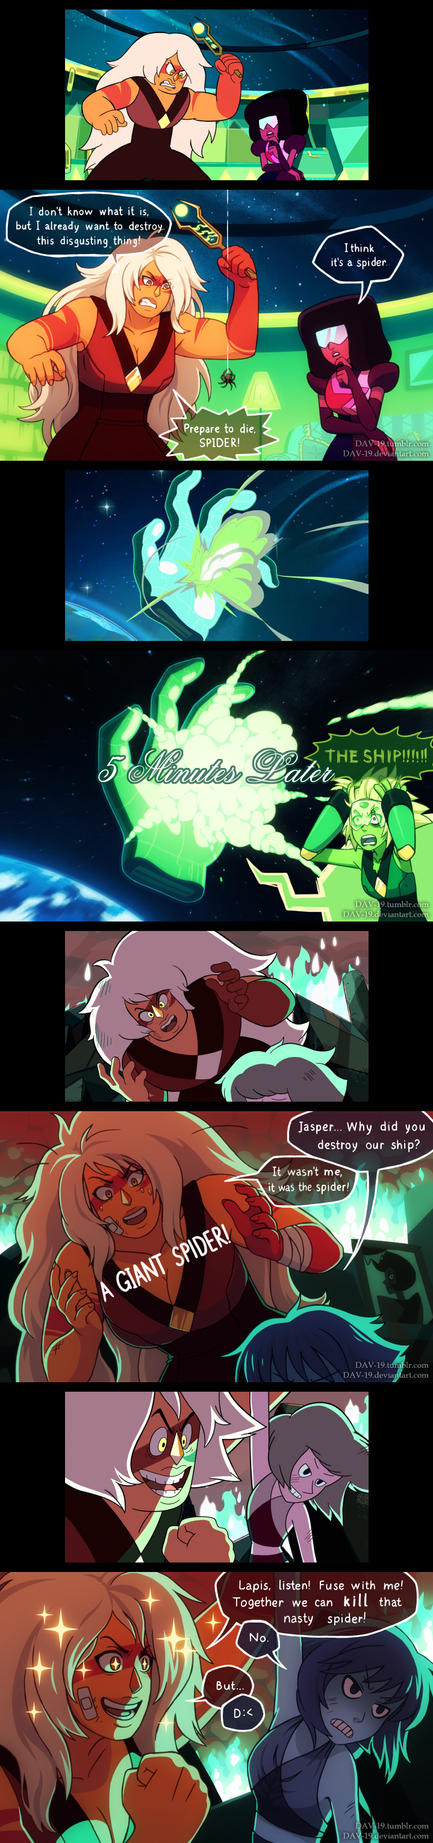 Steven Universe Screenshots Redraw by DAV-19